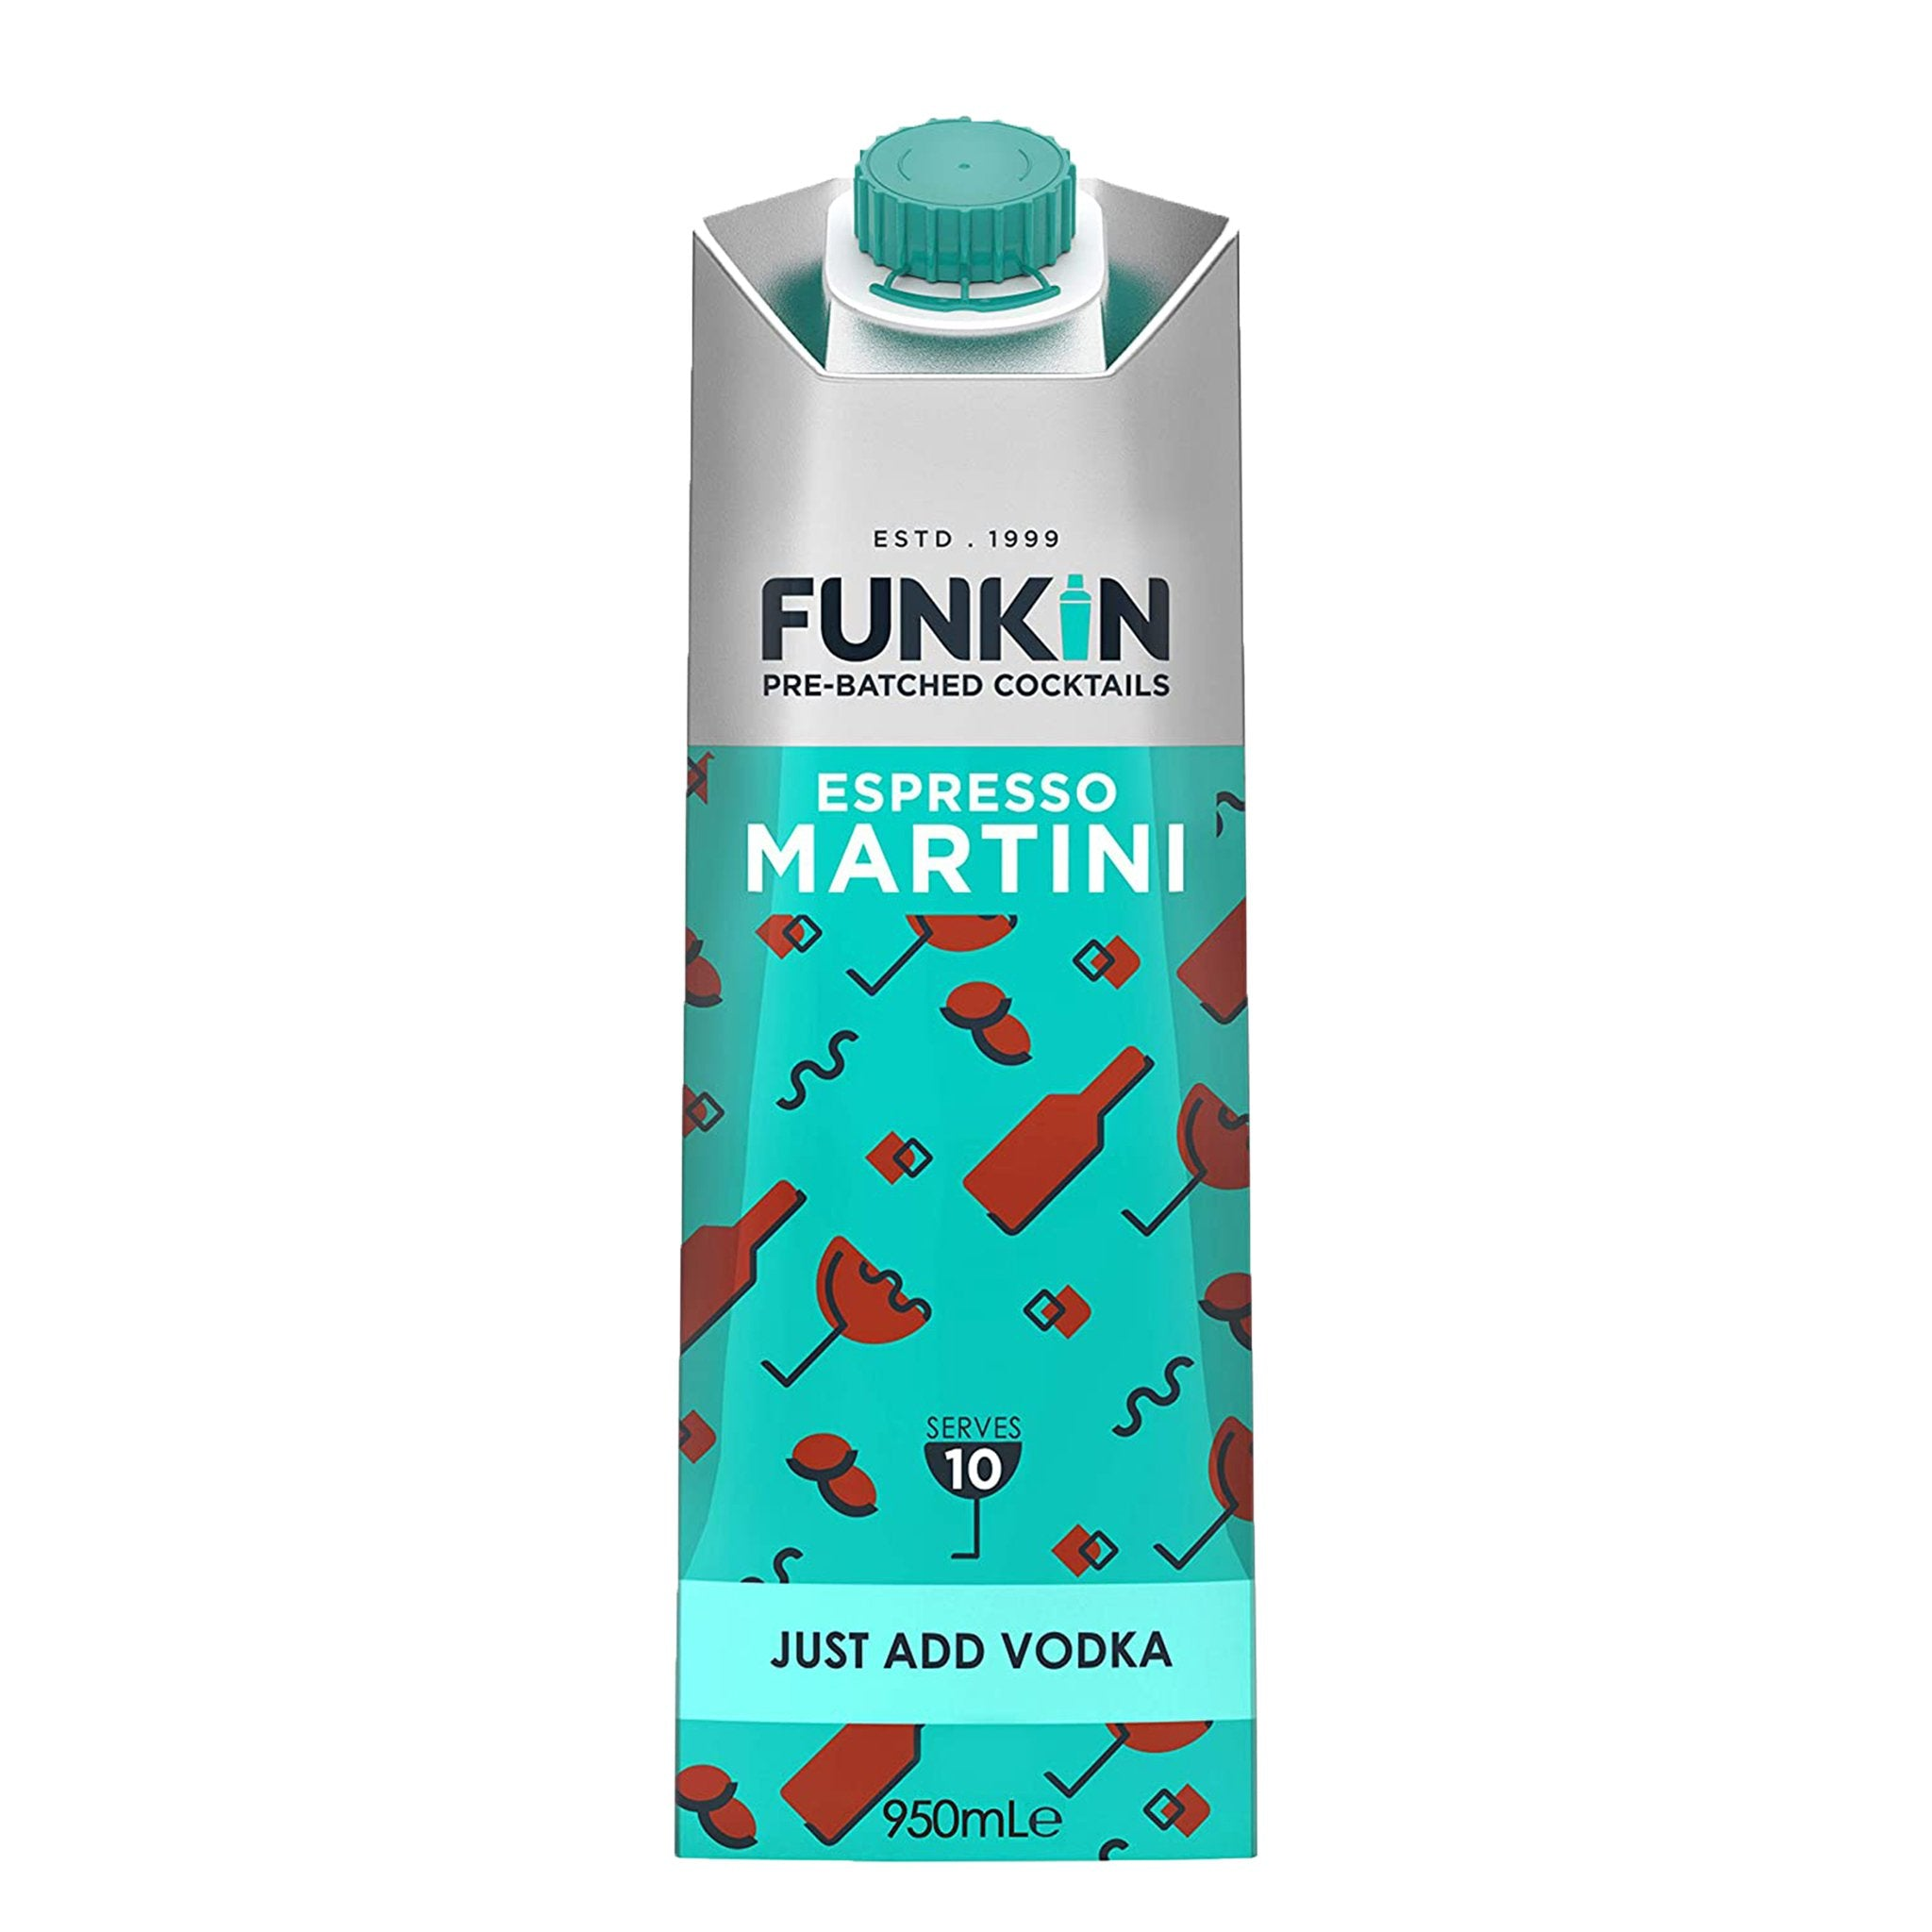 Funkin Pre-Batched Cocktails Espresso Martini 1L, Cocktail Mixes by Drinks Shop